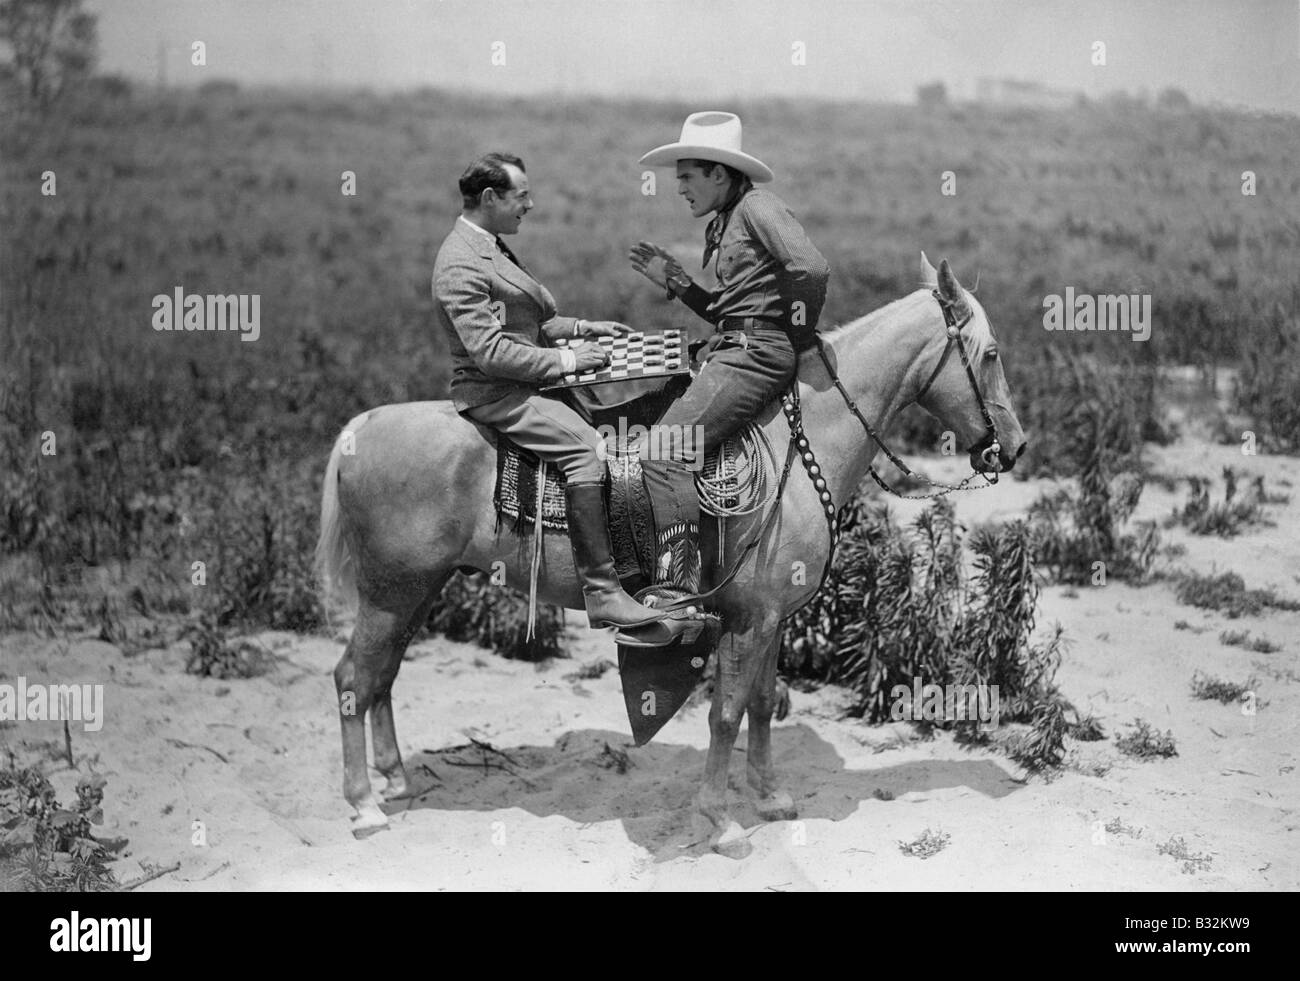 Cowboy and businessman playing checkers on horseback - Stock Image